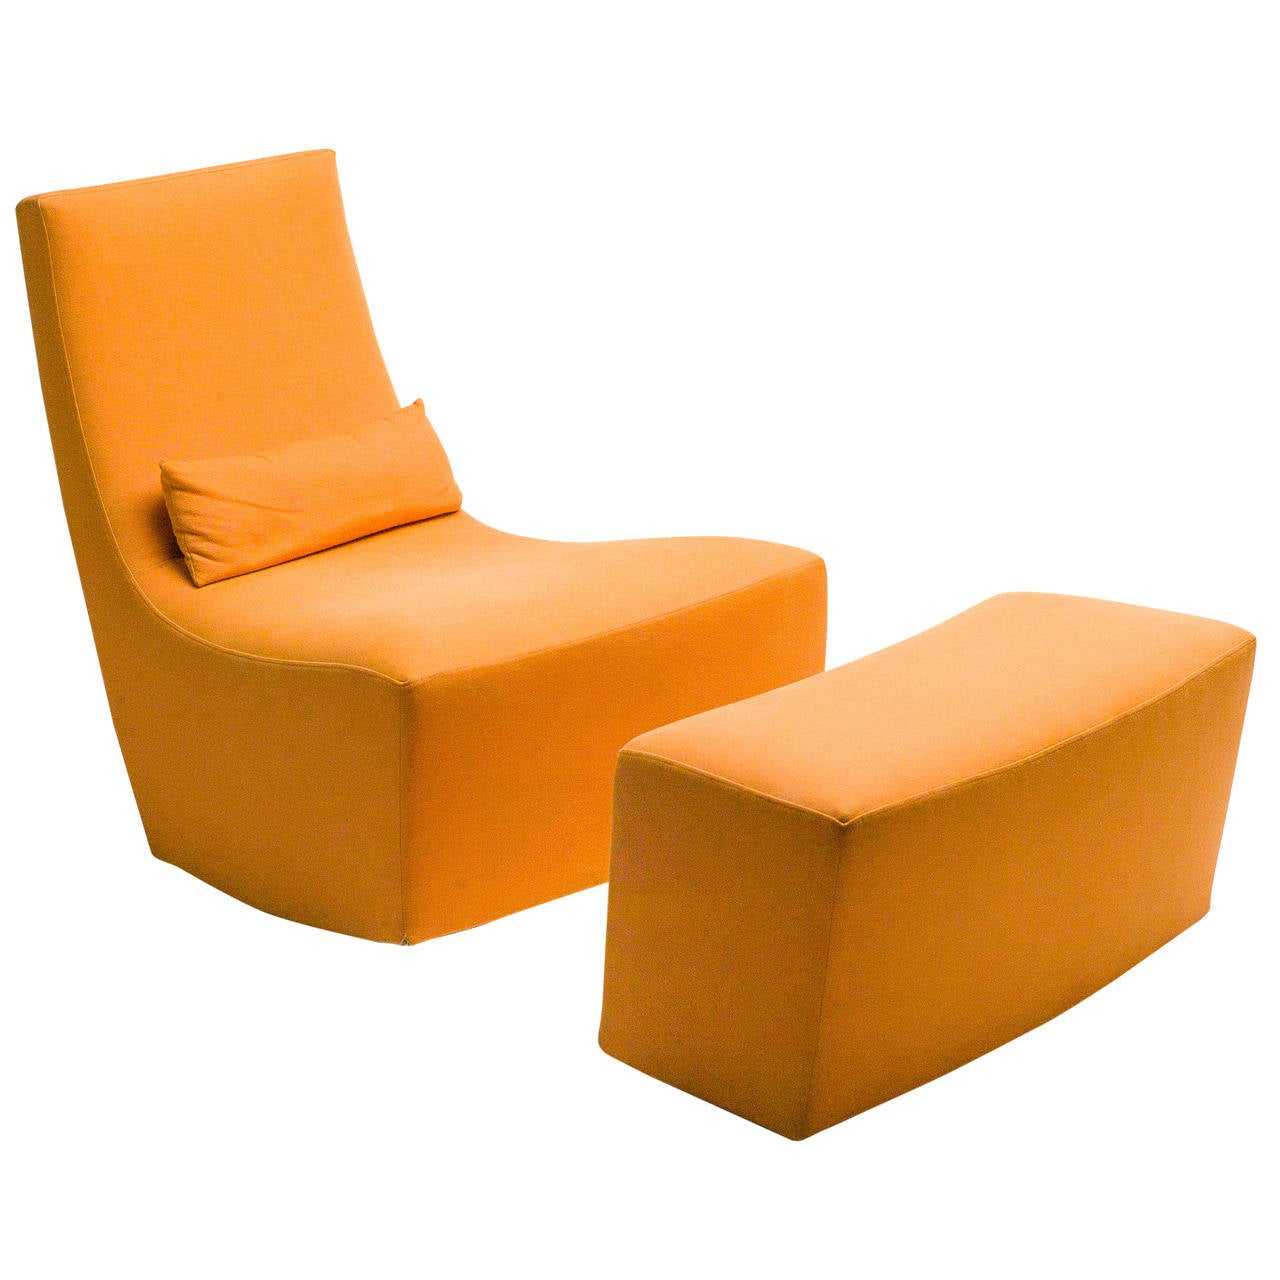 rocking lounge chair and ottoman by ligne roset at 1stdibs. Black Bedroom Furniture Sets. Home Design Ideas